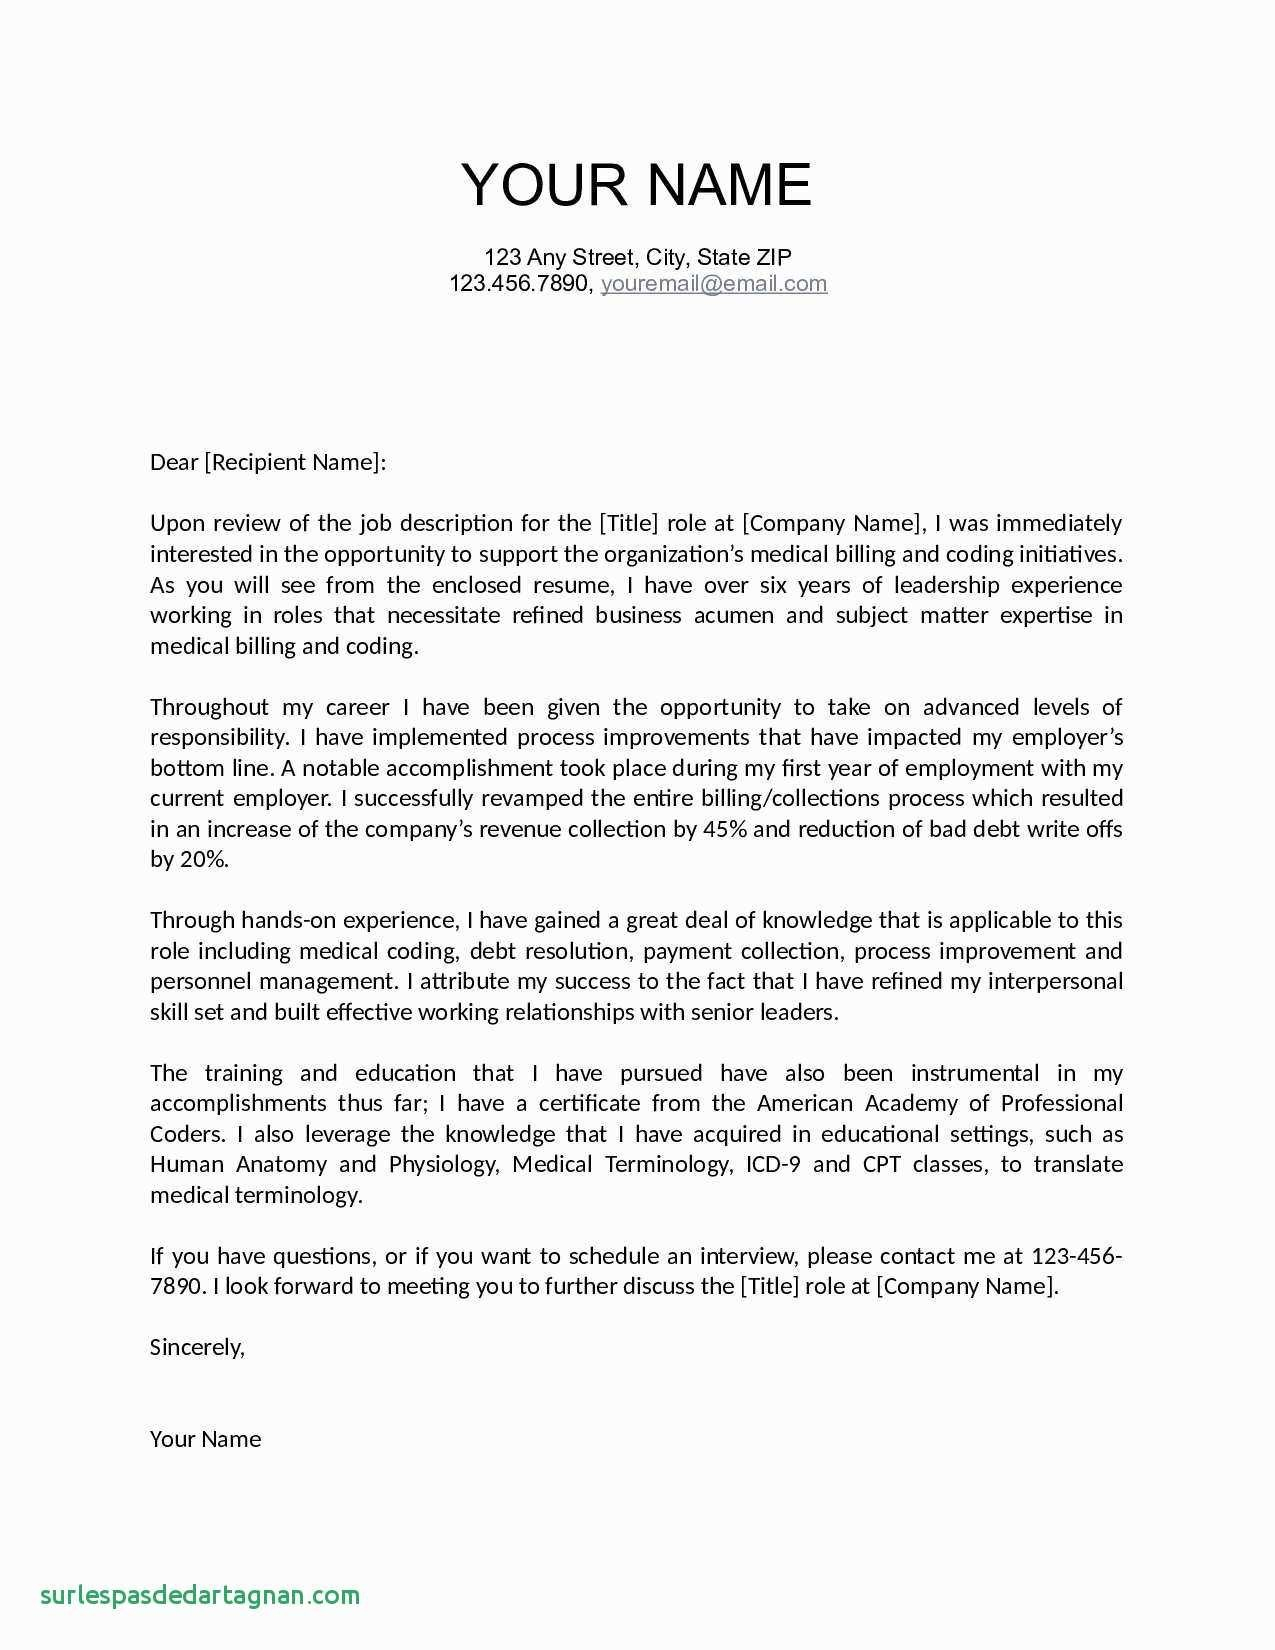 Credit Freeze Letter Template - How to Make A Letter Interest for A Job New Fresh Job Fer Letter